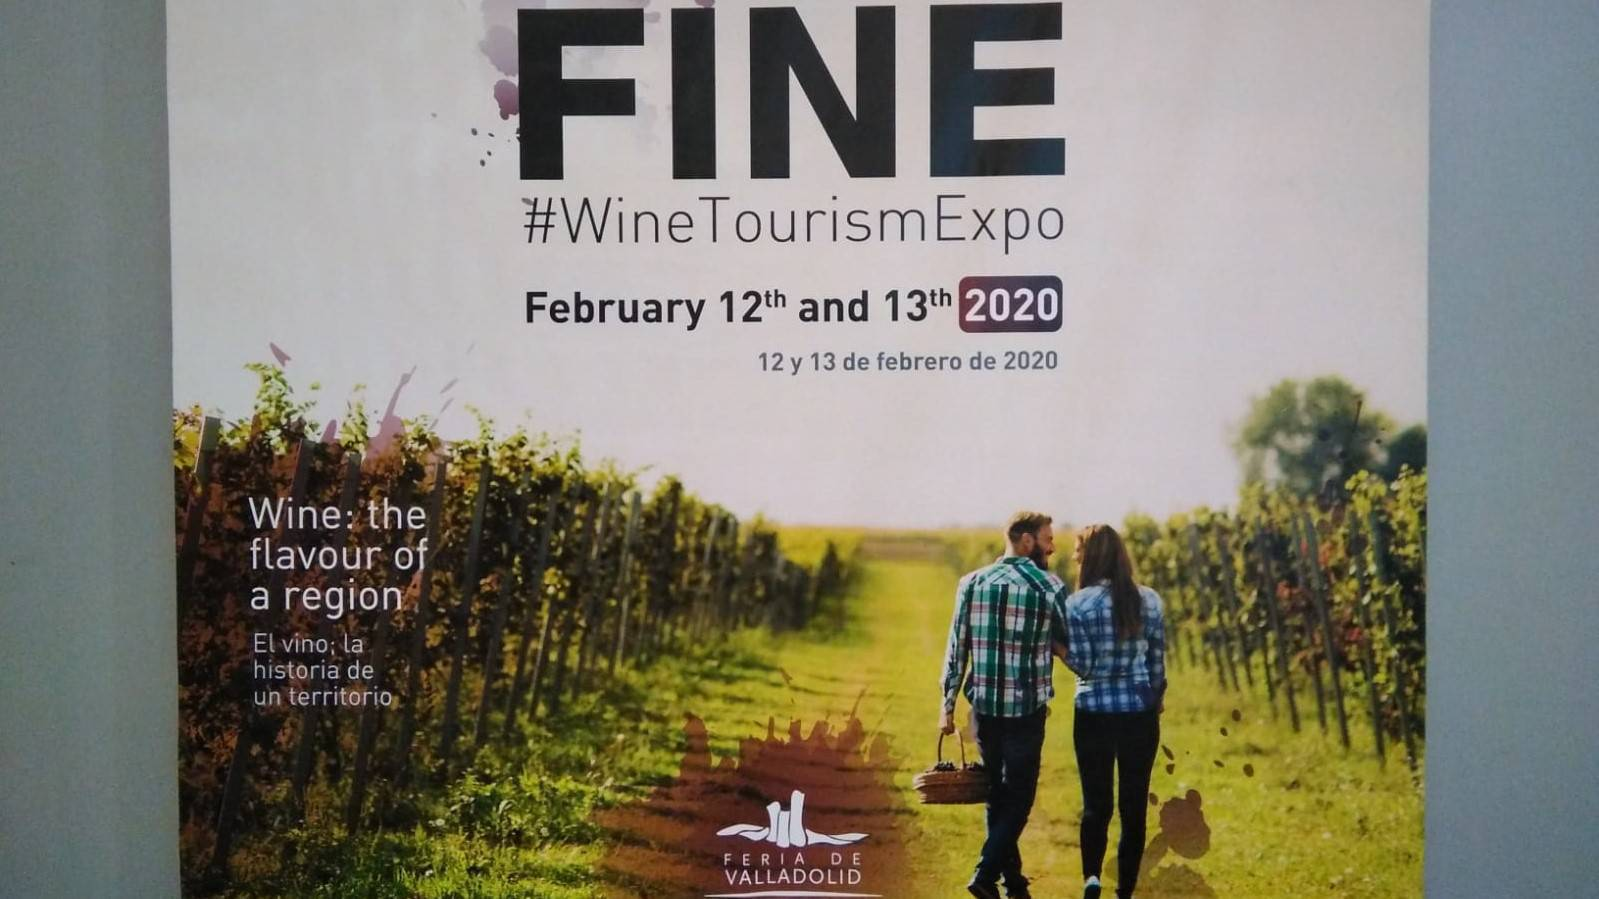 Yecla Wine Route at FINE Wine Tourism Expo